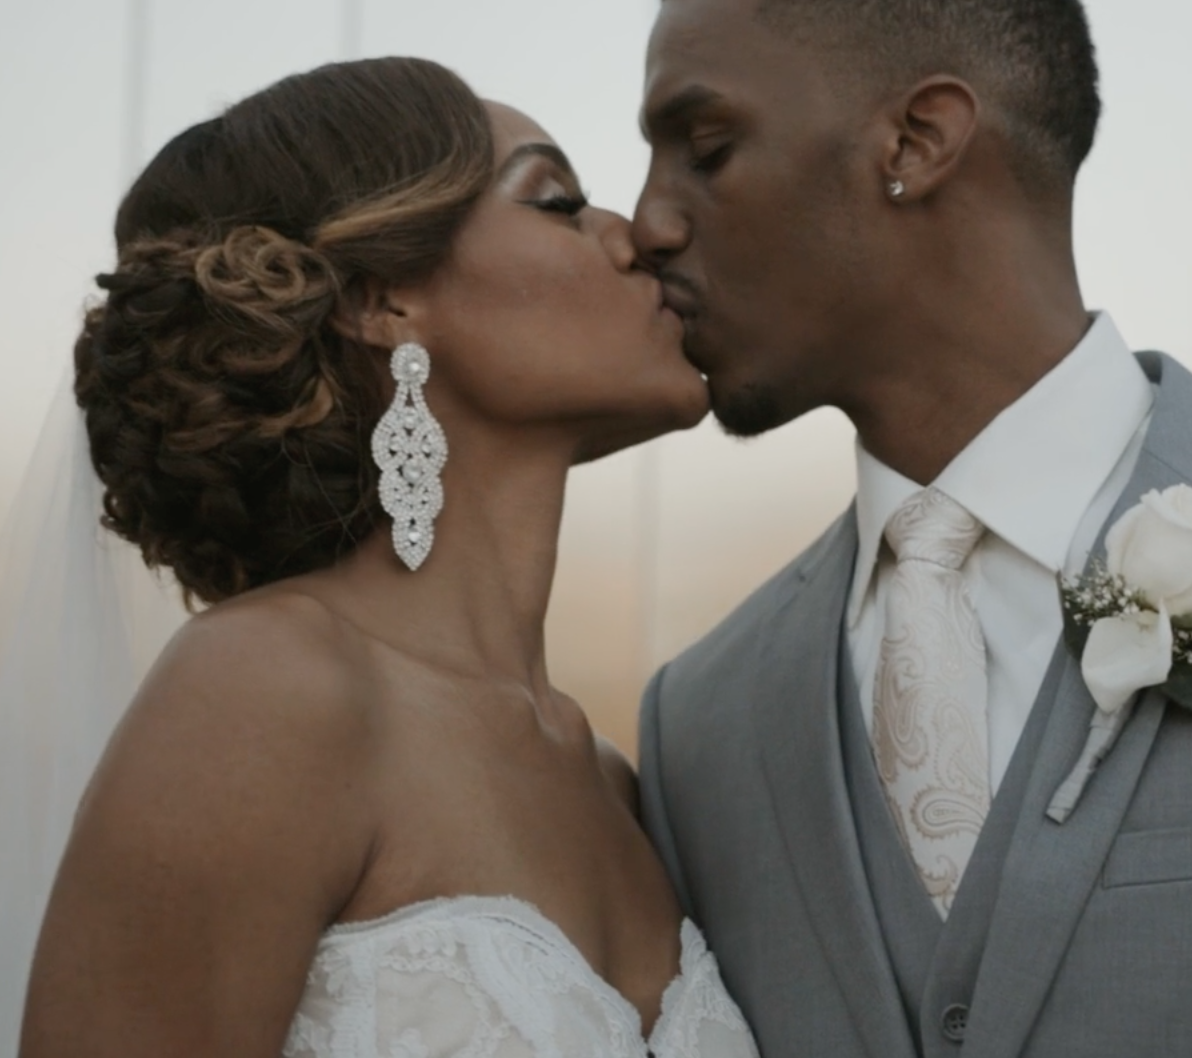 Insanely Wedding Video Will Make You Cry